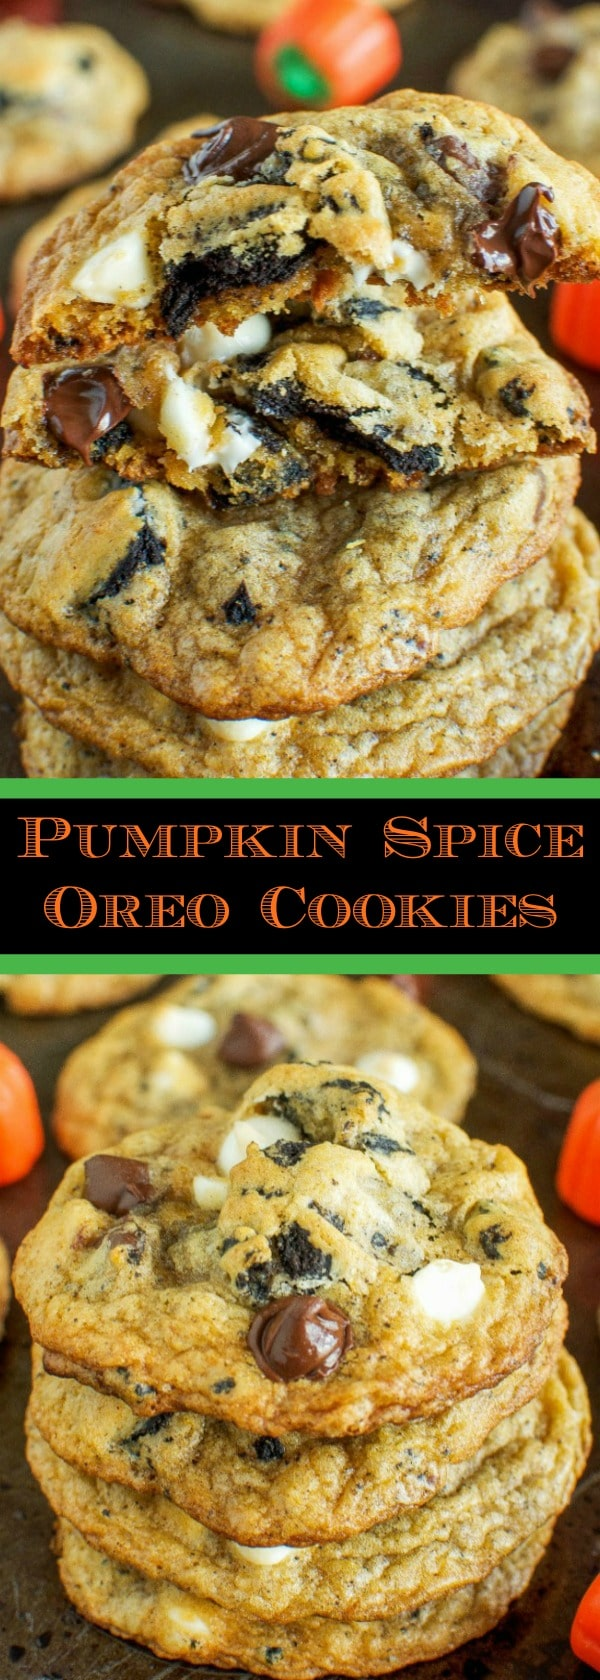 Pumpkin Spice Oreo Chocolate Chip Cookies - Pumpkin pie meets cookies and cream, meets, chocolate chip cookie! A must make for Fall! (Great for halloween, too!)